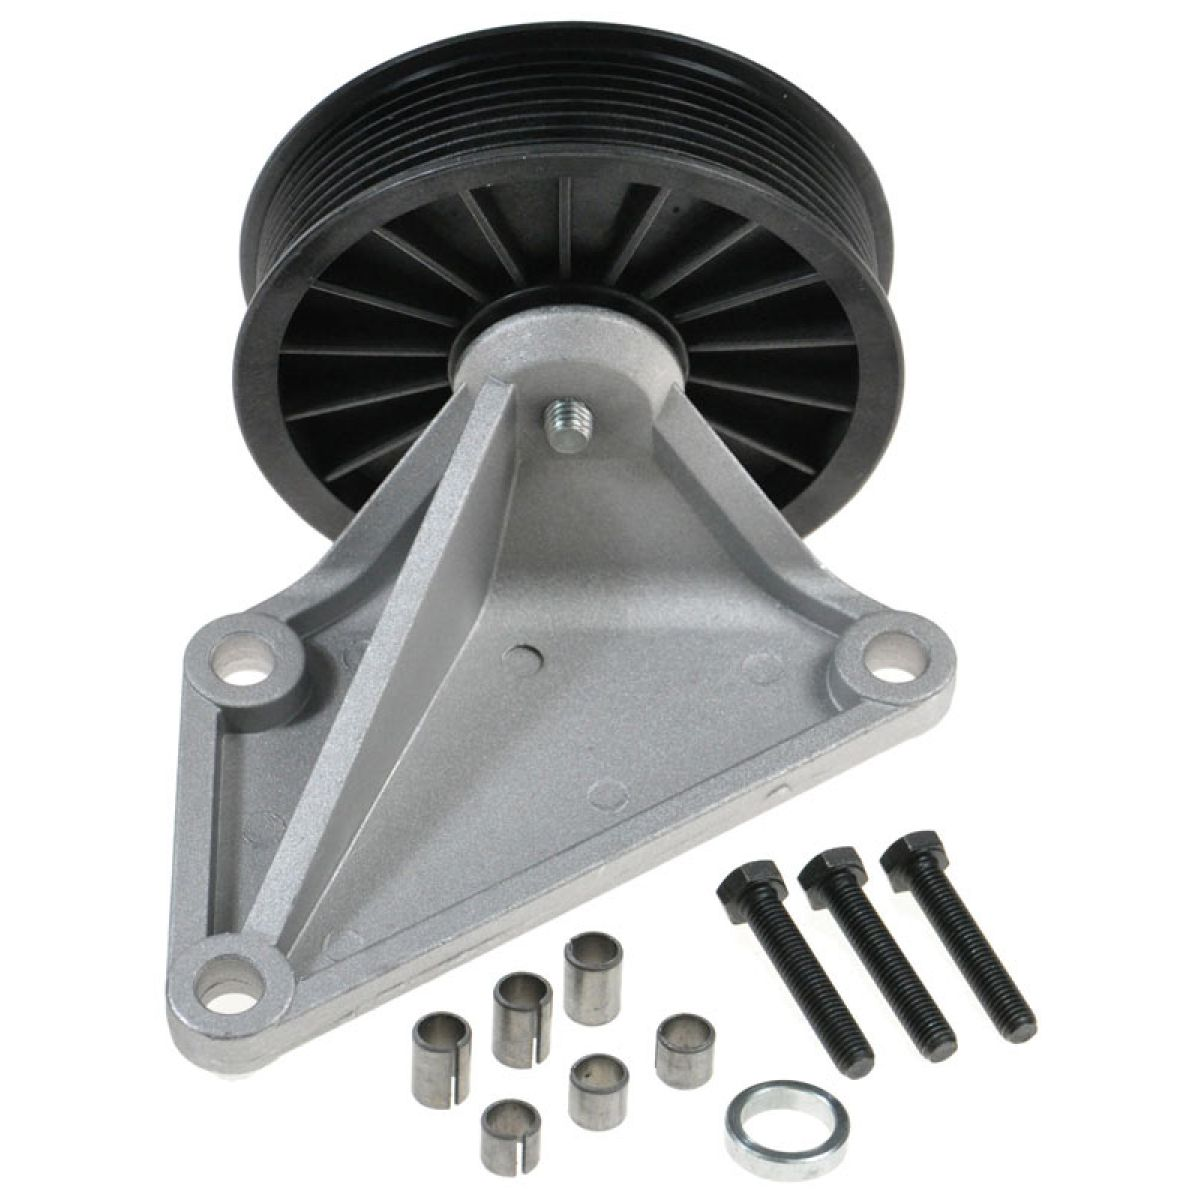 Dorman A C Bypass Pulley For 93 97 Ford F250 F350 E350 Pickup Truck 2006 F 250 6 0 Belt Diagram